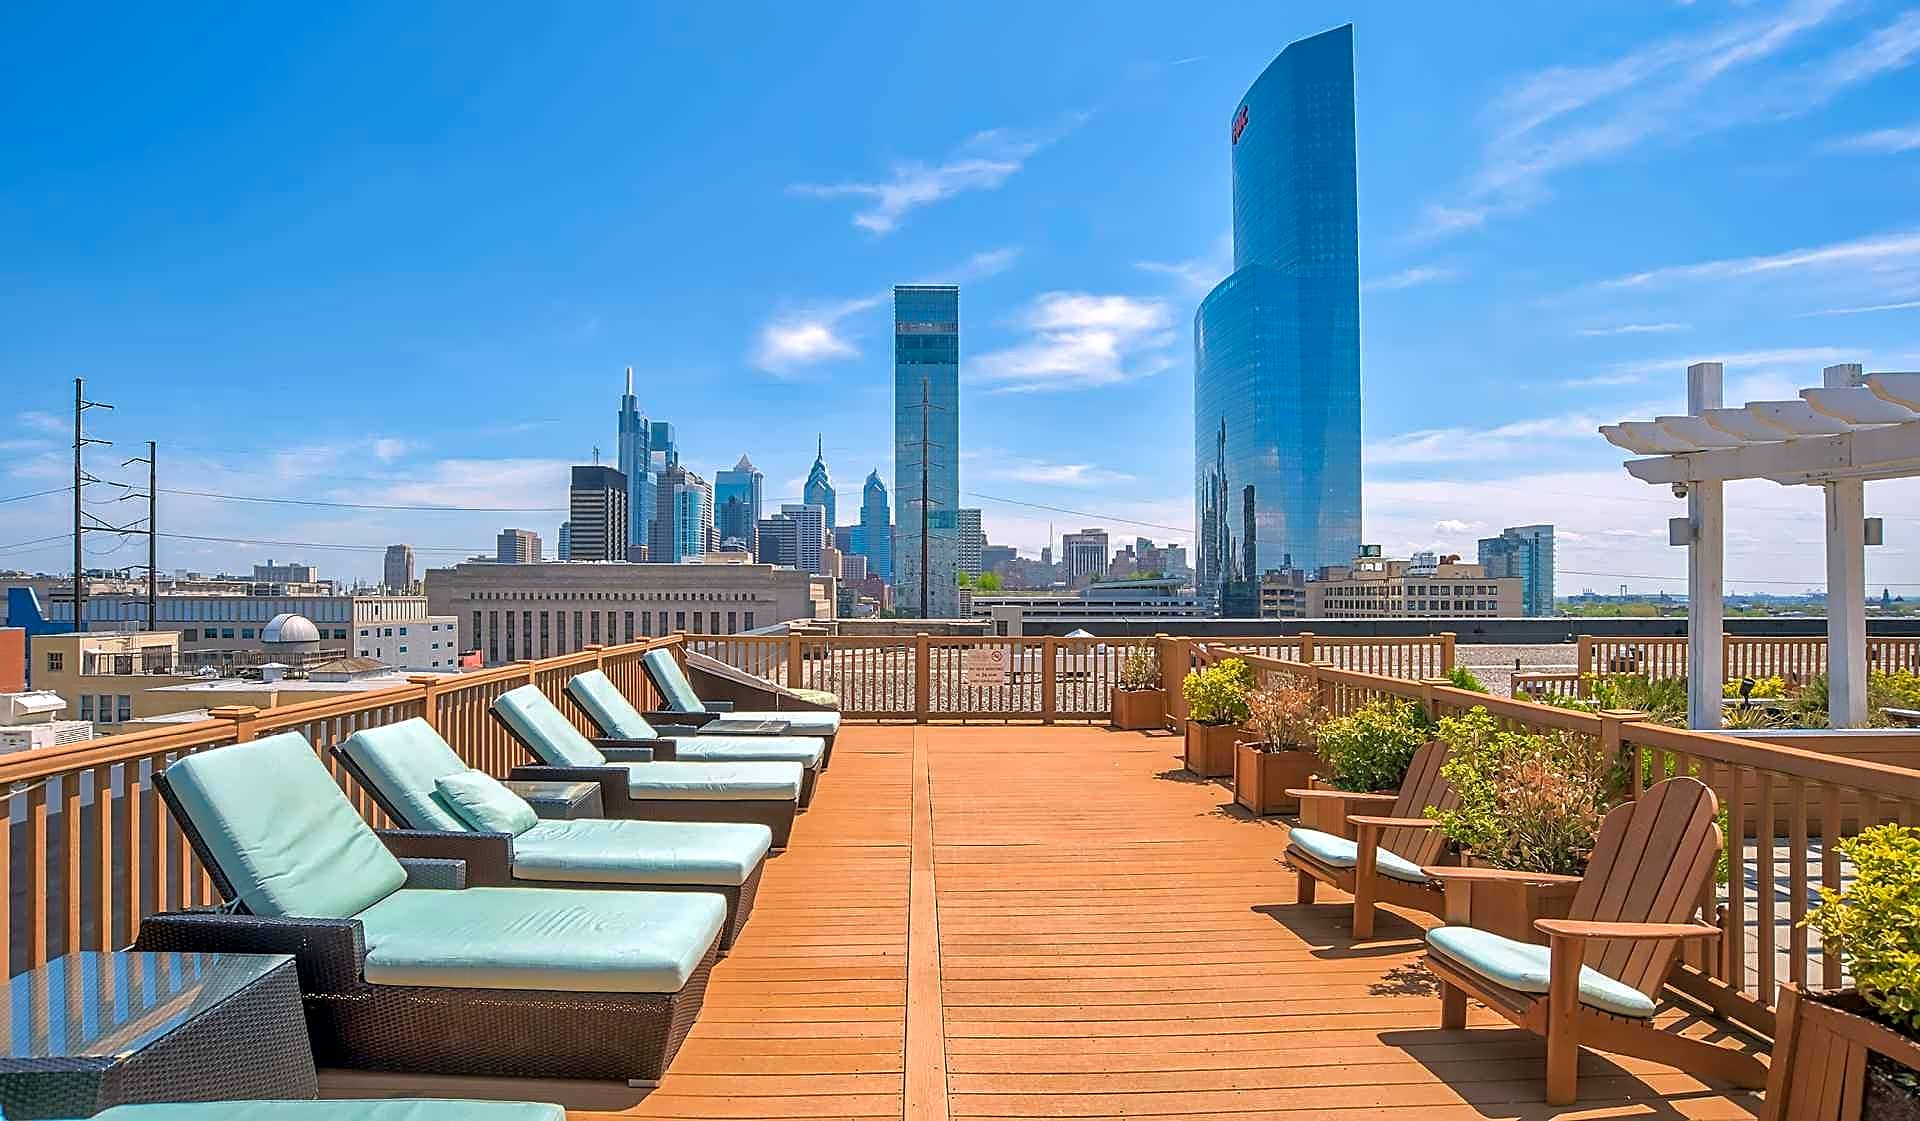 Amazing views from the rooftop social deck